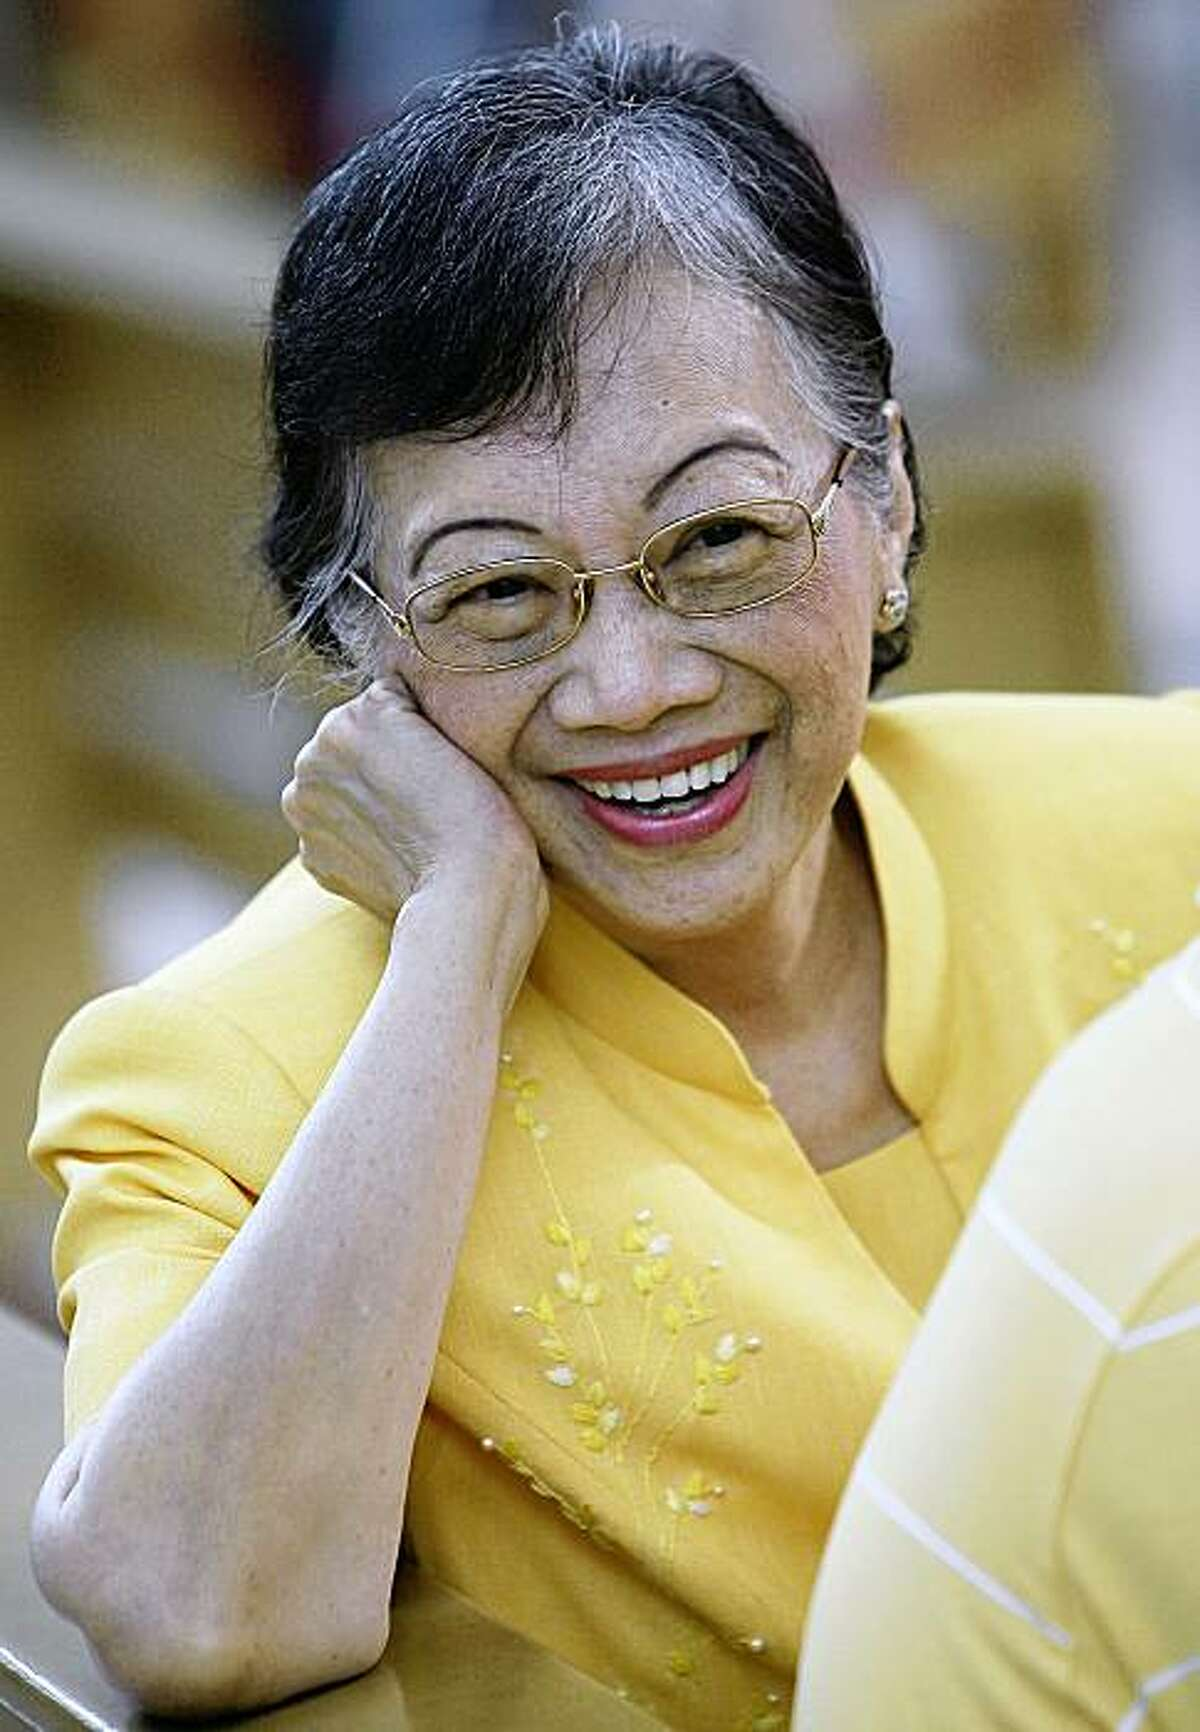 In this Sunday Aug. 17, 2008 file picture, cancer-stricken former Philippine President Corazon Aquino smiles to friends inside the church at the Ateneo de Manila University in suburban Quezon City, Philippines. Aquino, who swept away a dictator and then sustained democracy by fighting off seven coup attempts in six years, has died, her family said Friday, July 31, 2009. She was 76. (AP Photo/Aaron Favila)